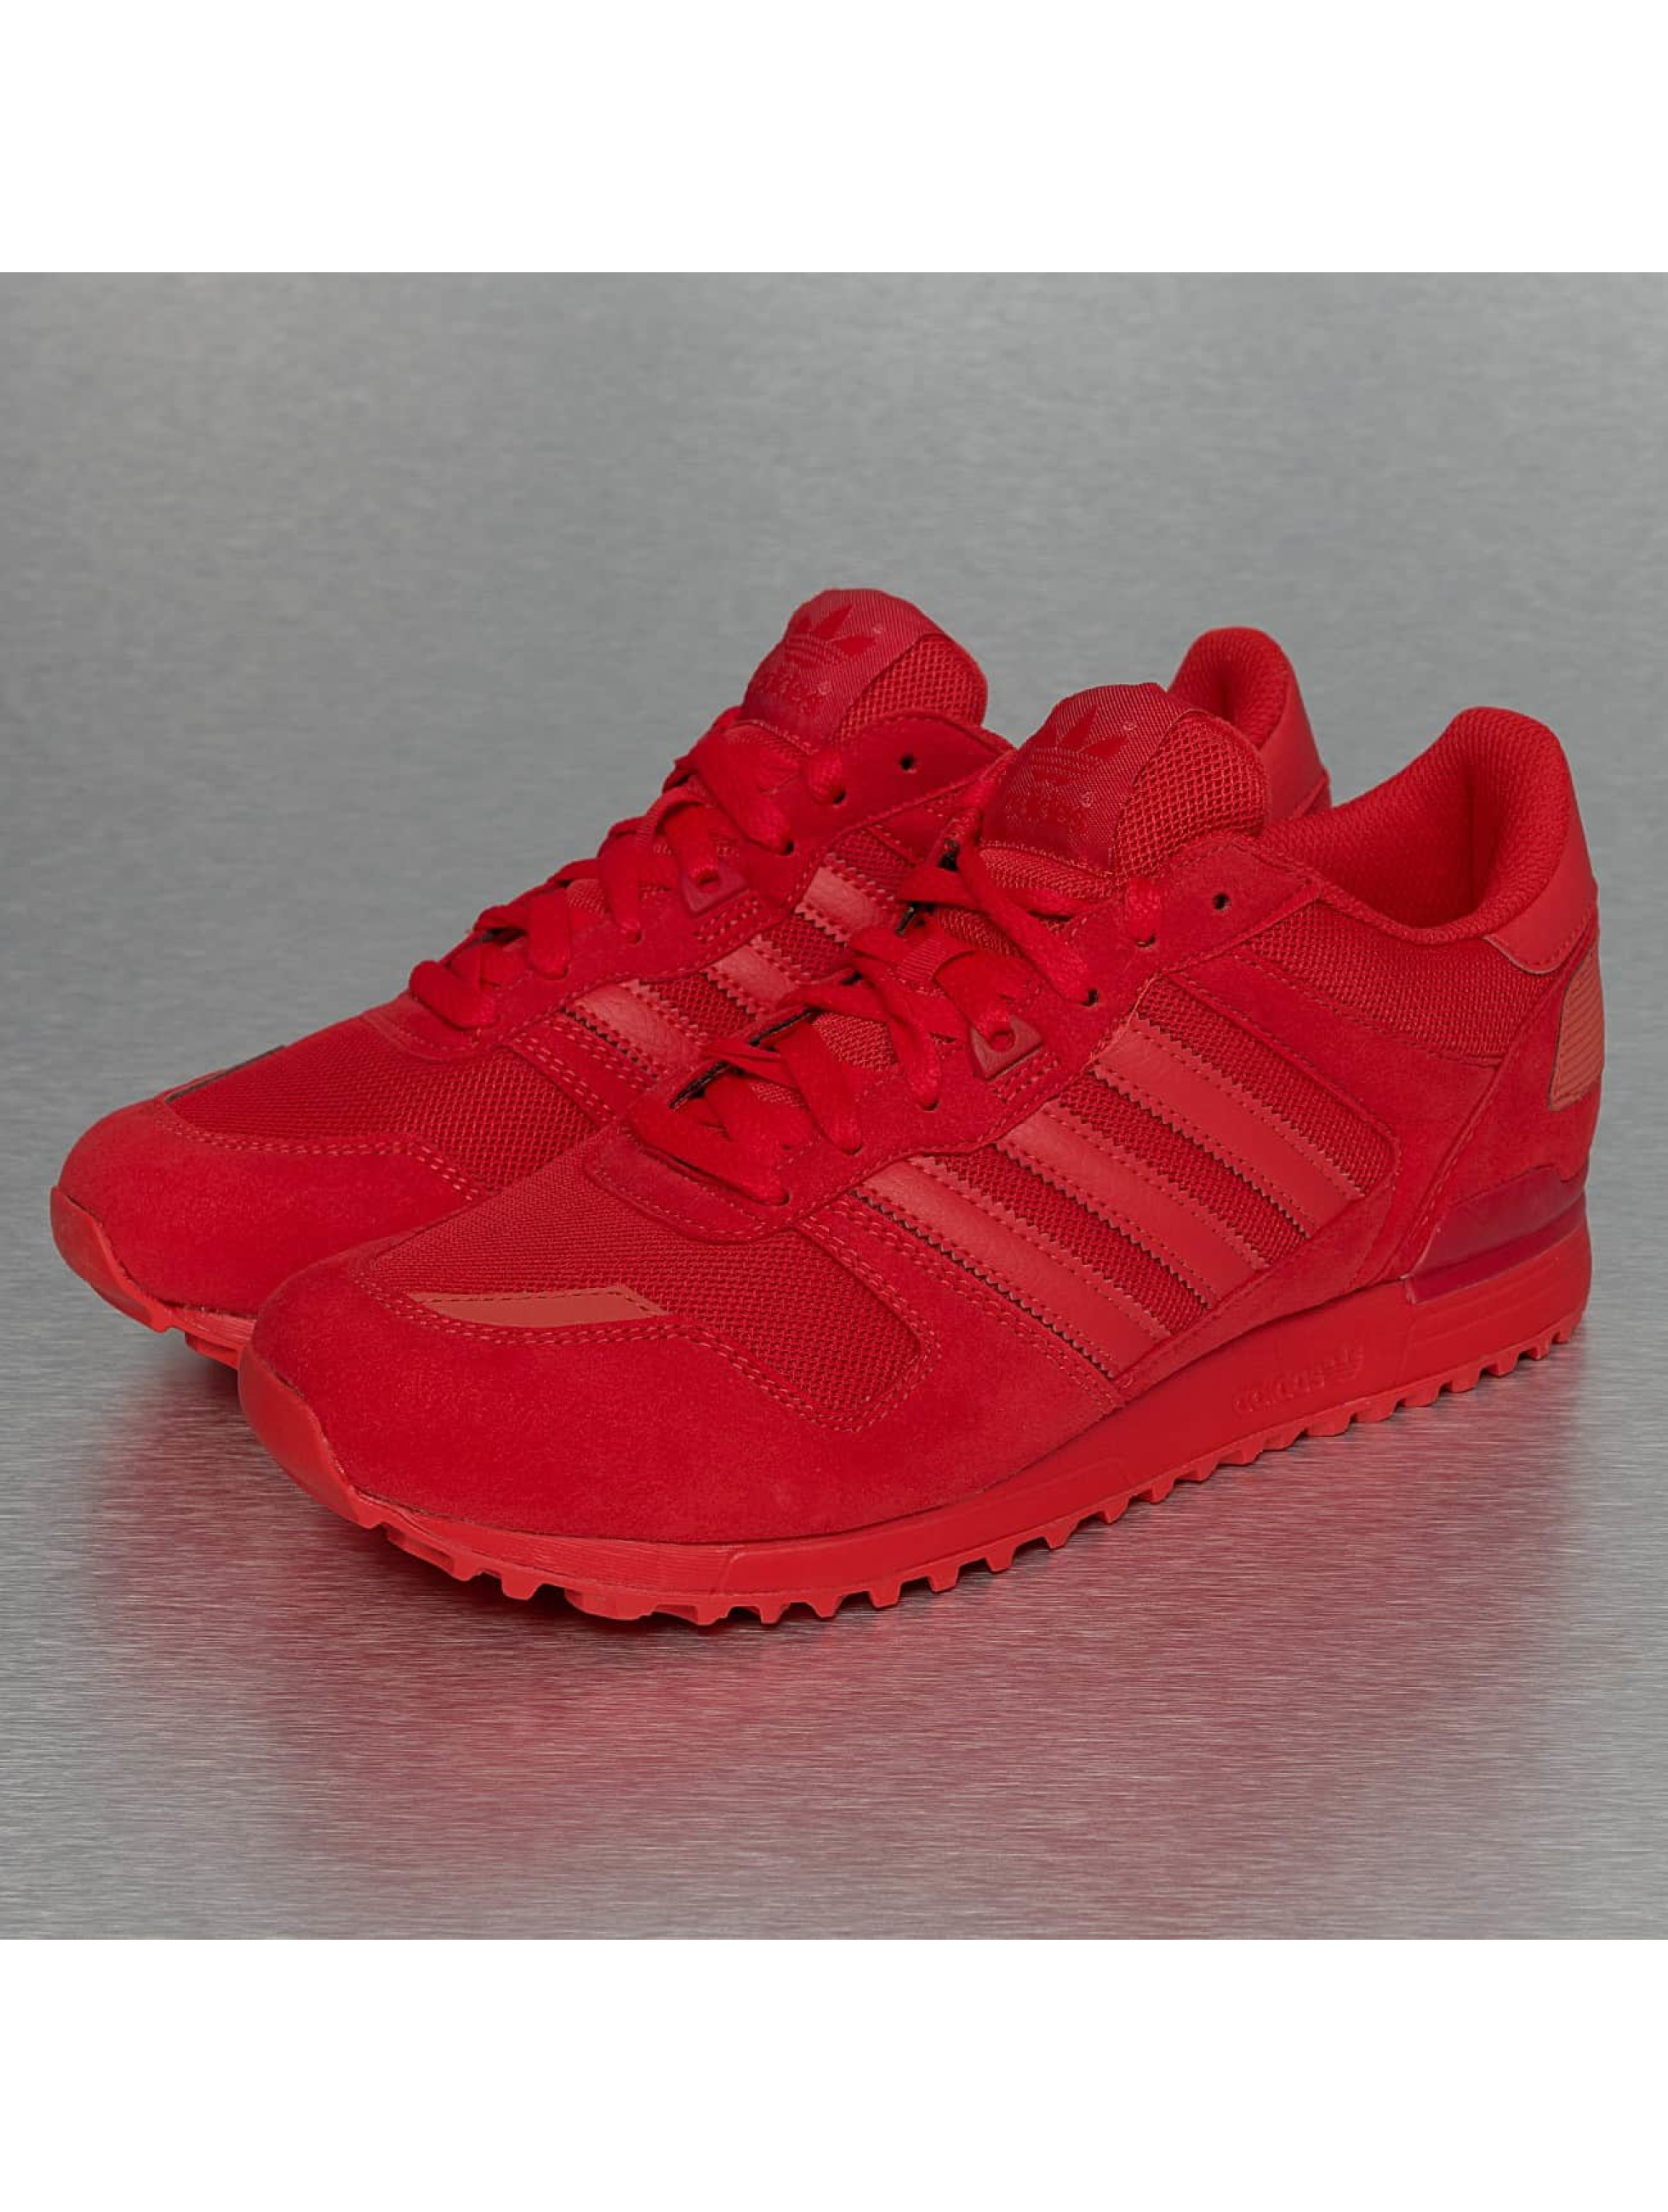 Adidas Sneakers Rood